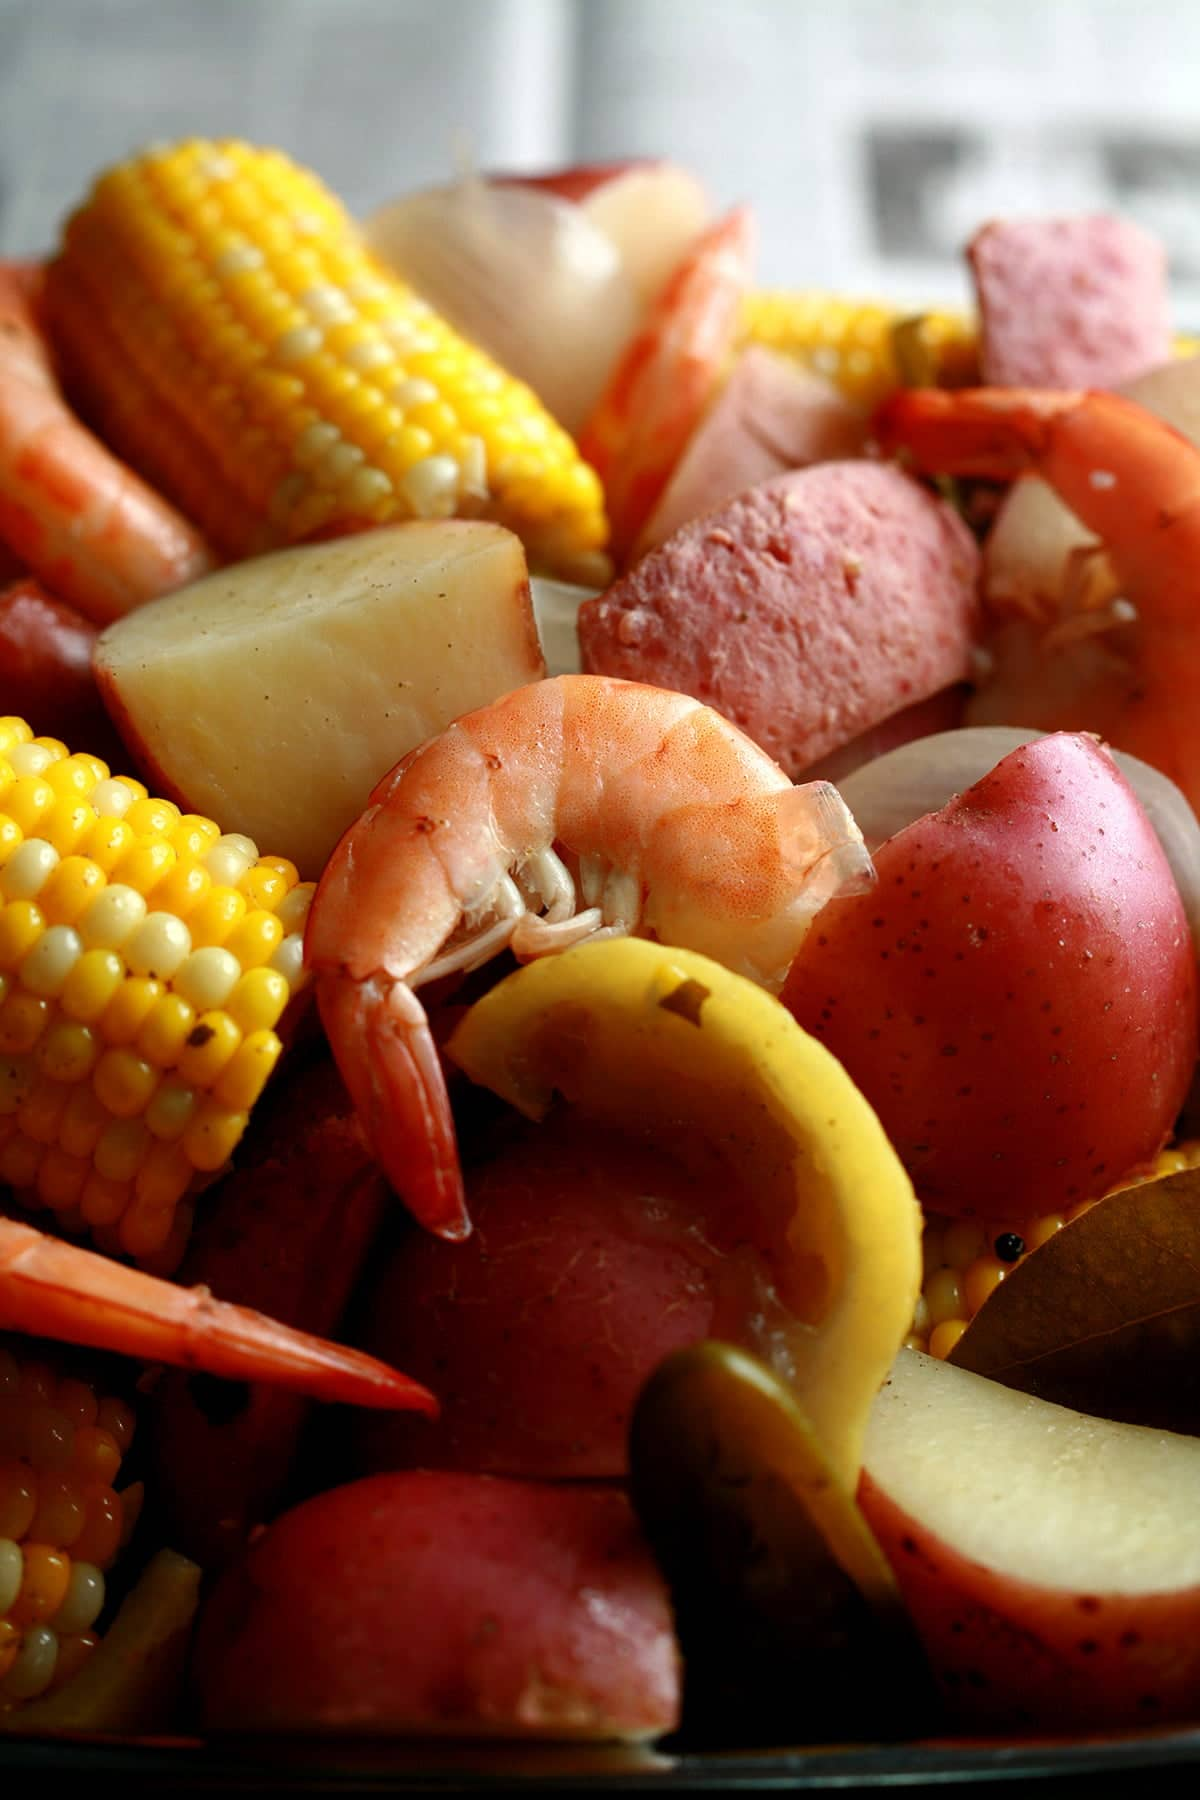 A close up view of a batch of low country boil: Red potatoes, corn on the cob, shrimp, and sausage.